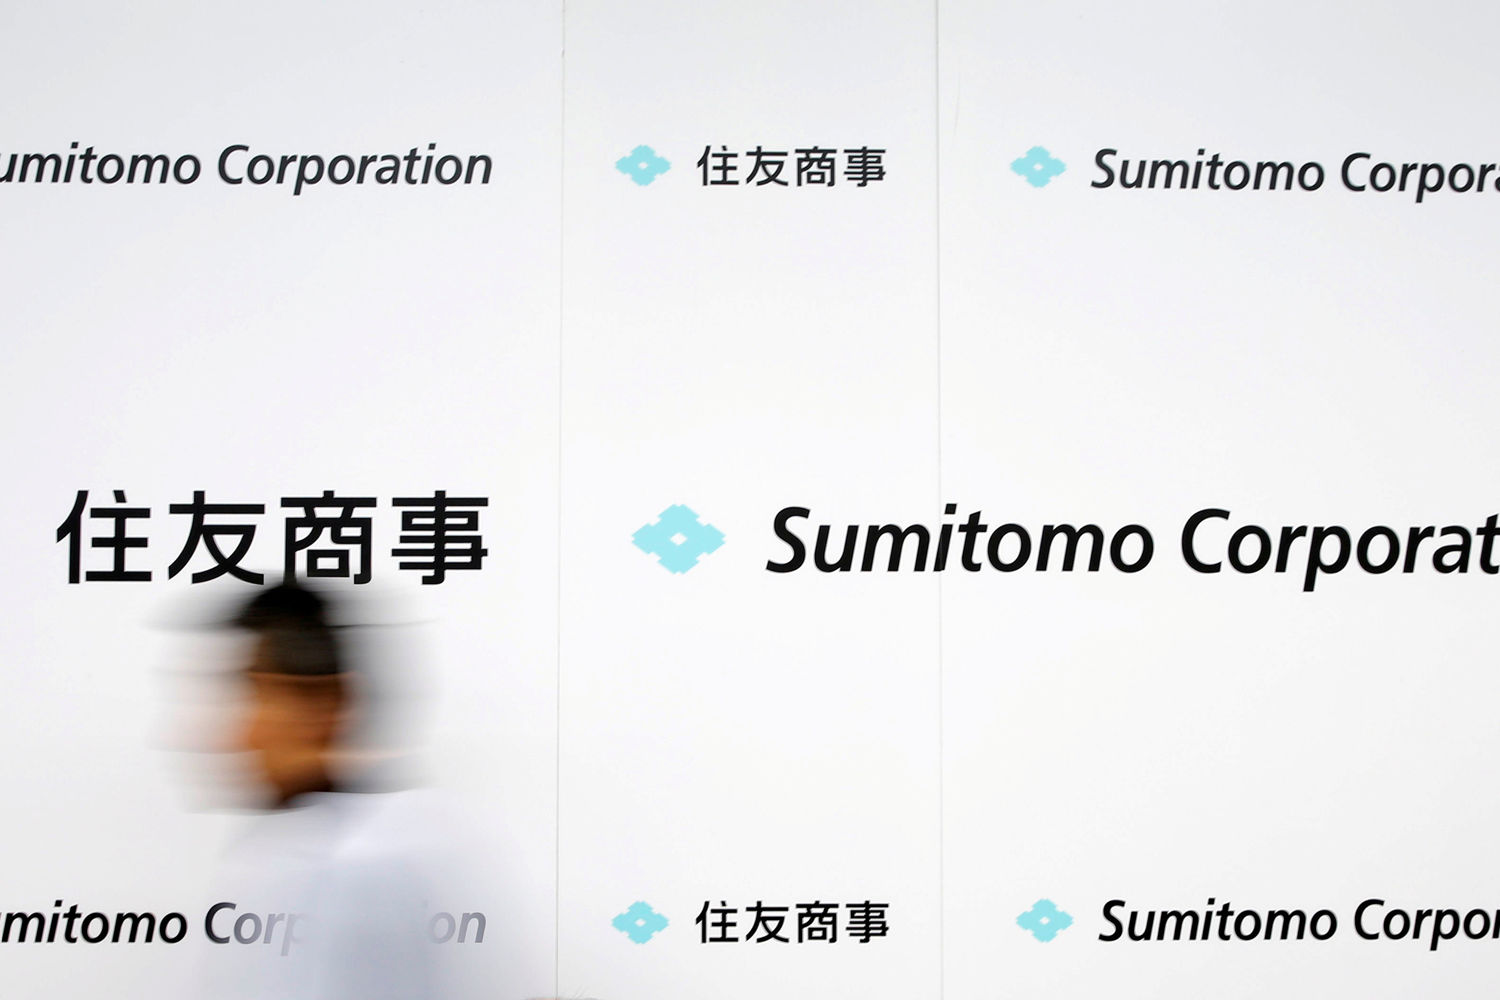 Sumitomo halts new oil investments in switch to greener power